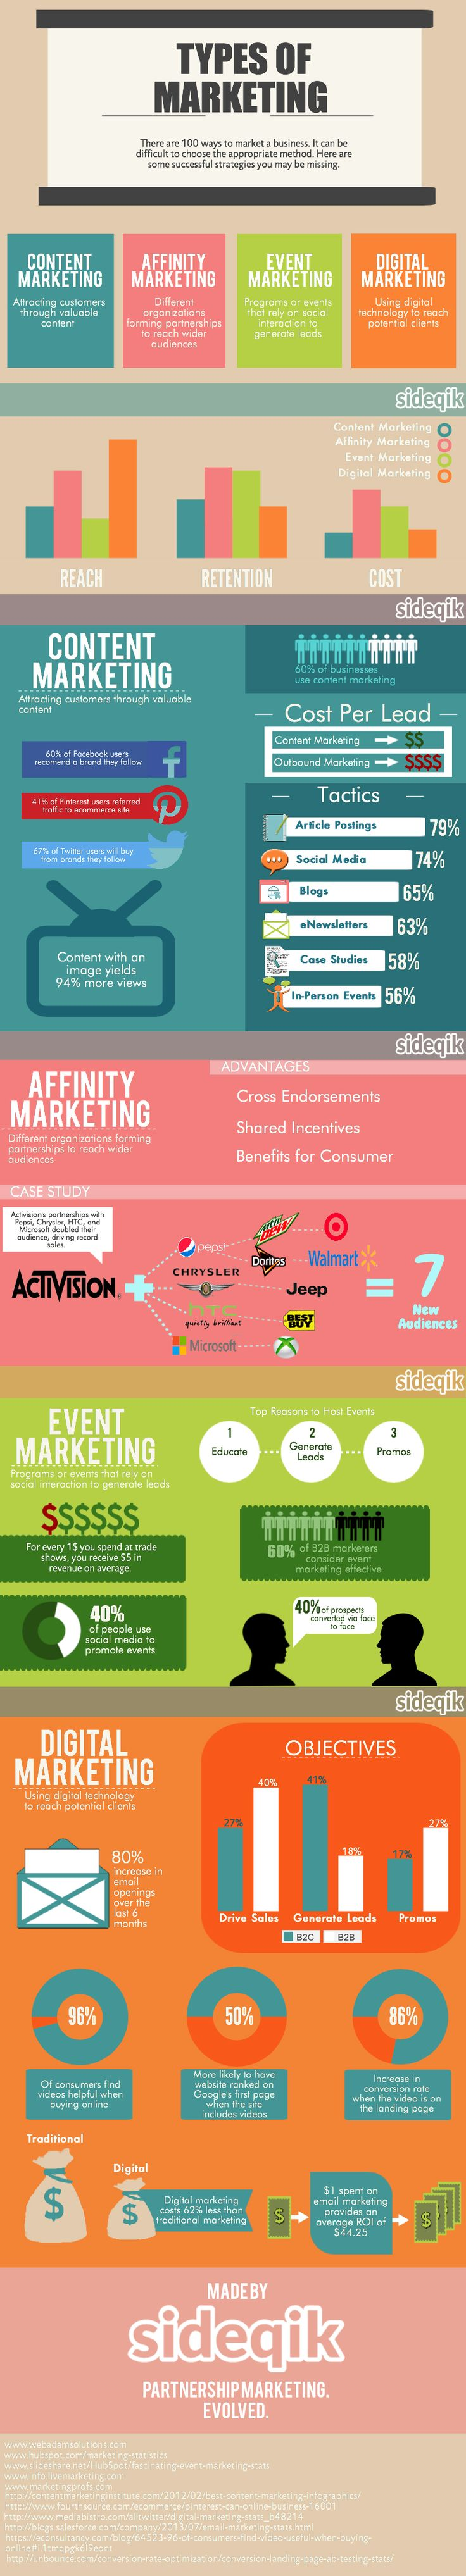 Trending Types of Marketing You Should Have Tried Months Ago #Infographic